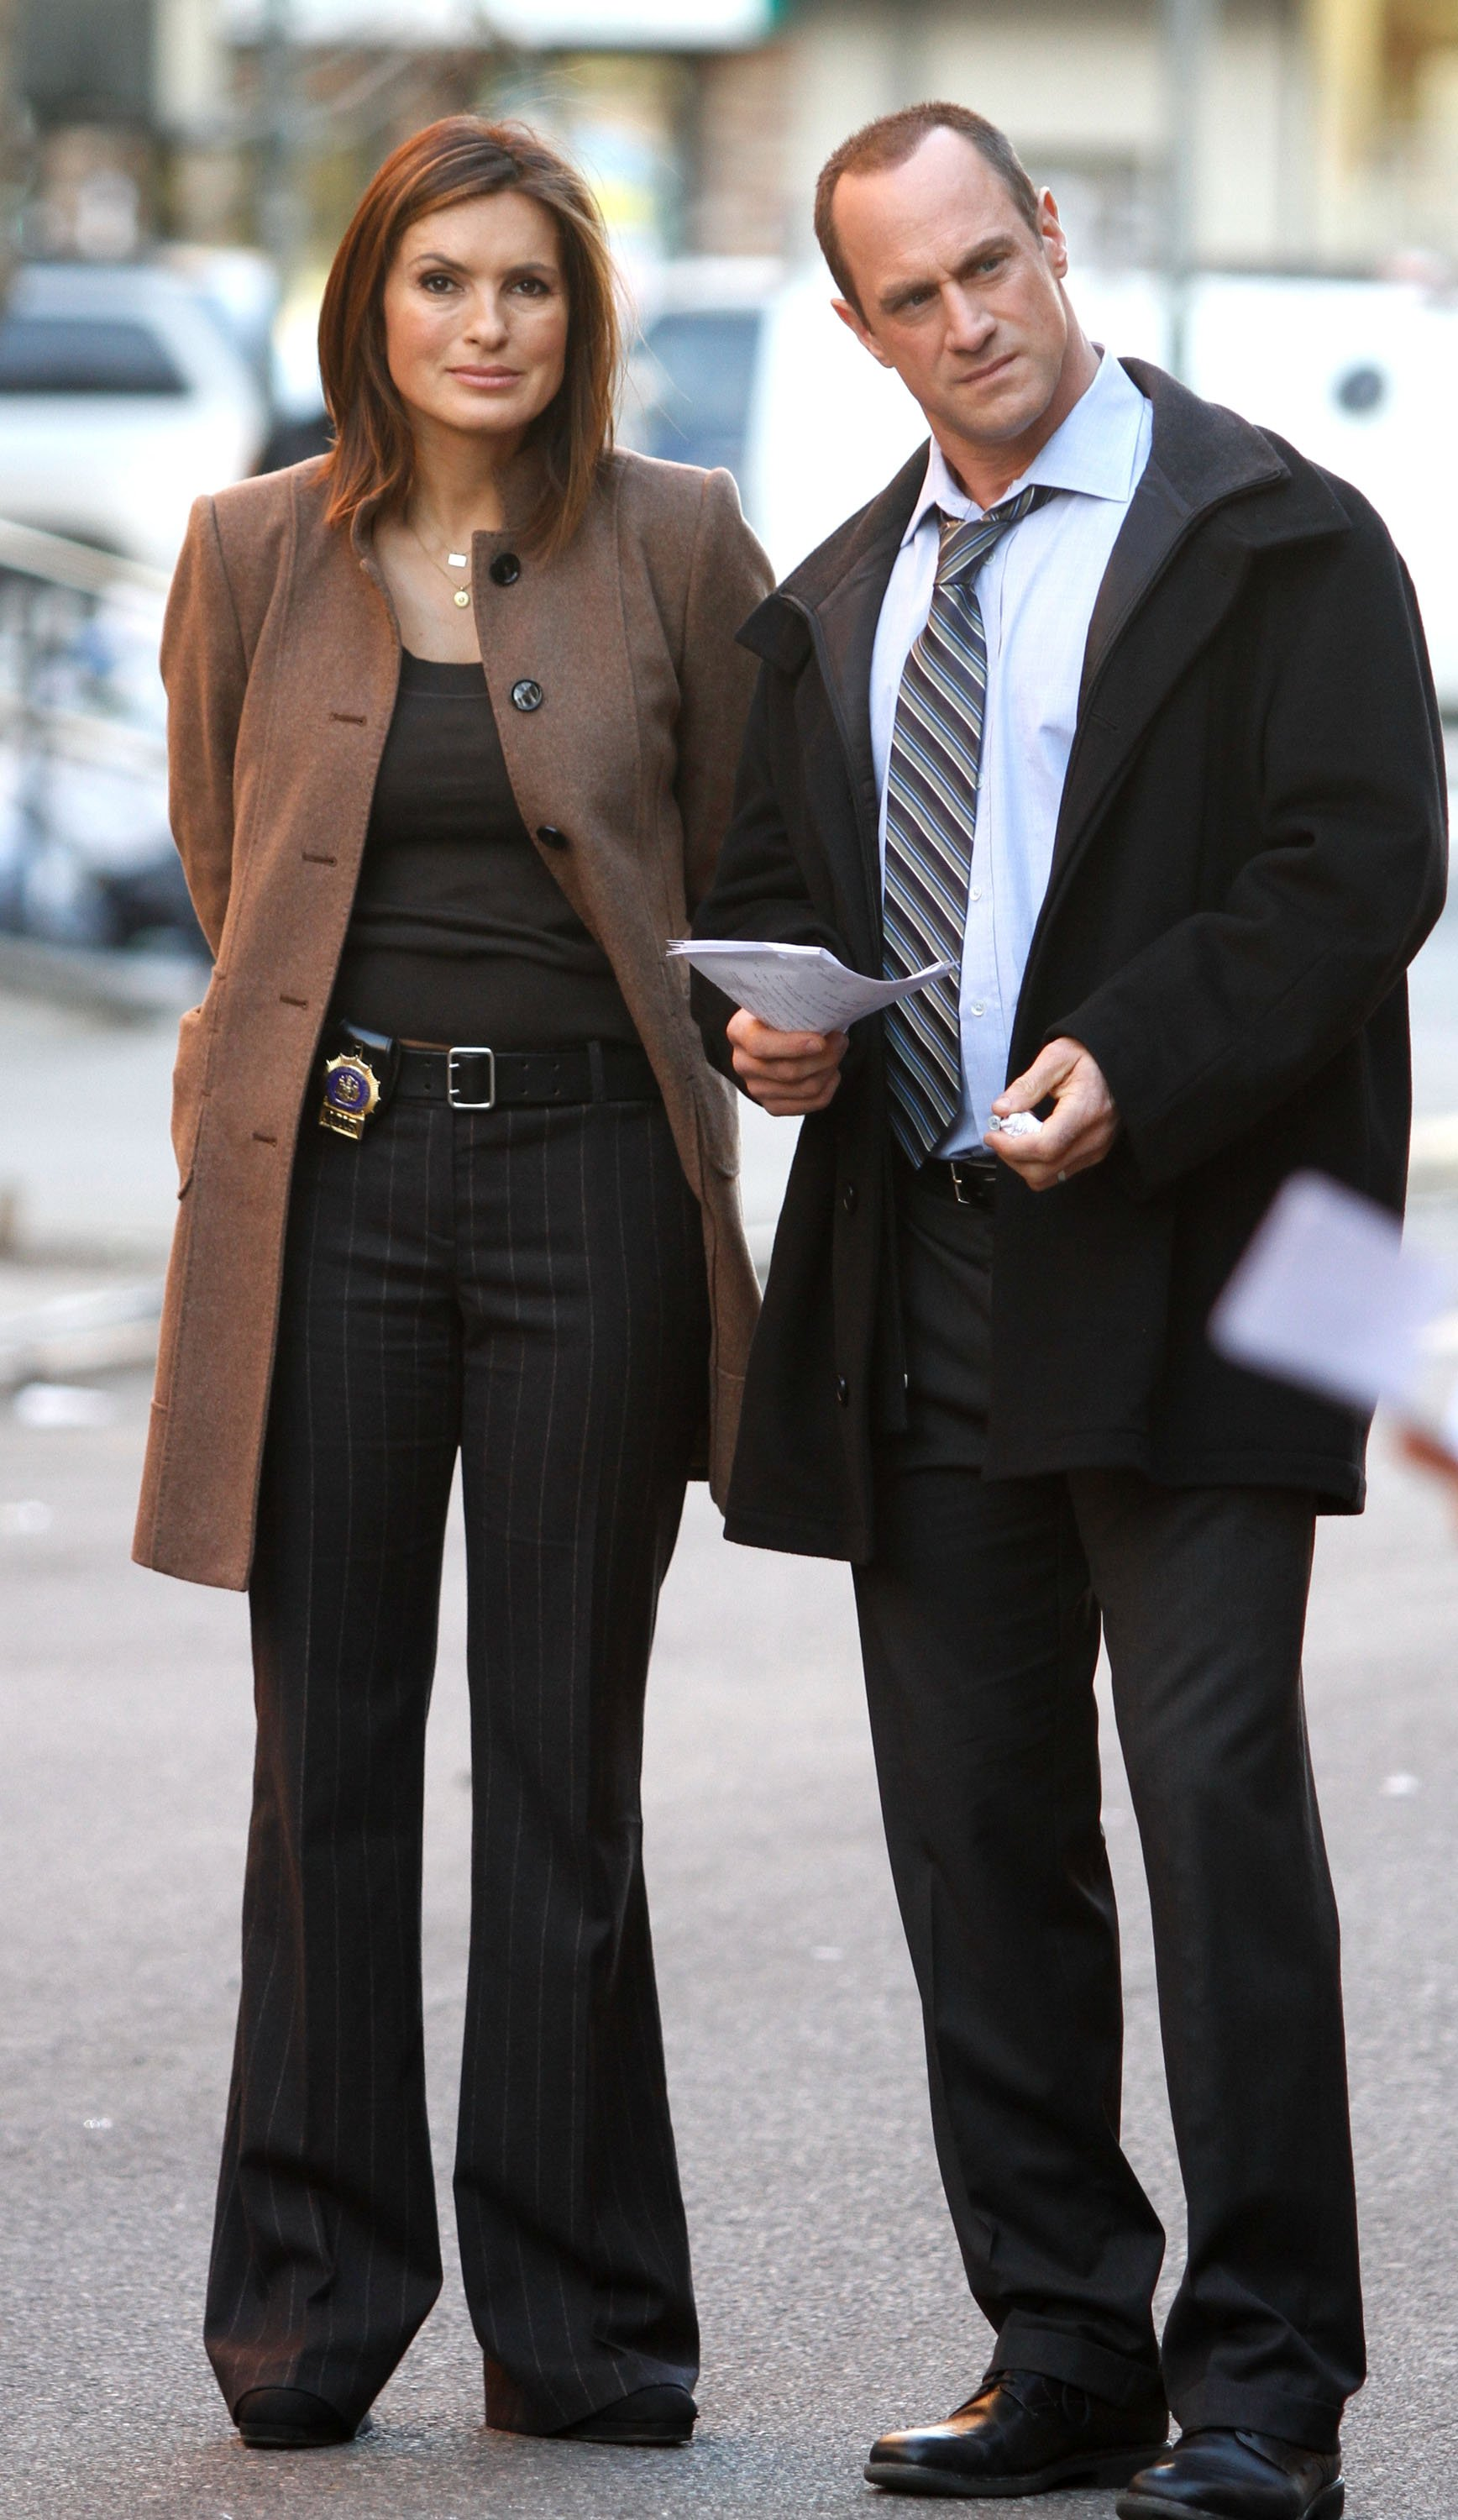 """Chris Meloni and Mariska Hargitay will be reunited in season 2 of """"Law & Order, SVU"""" before the premiere of """"Organized Crime"""" this year. 